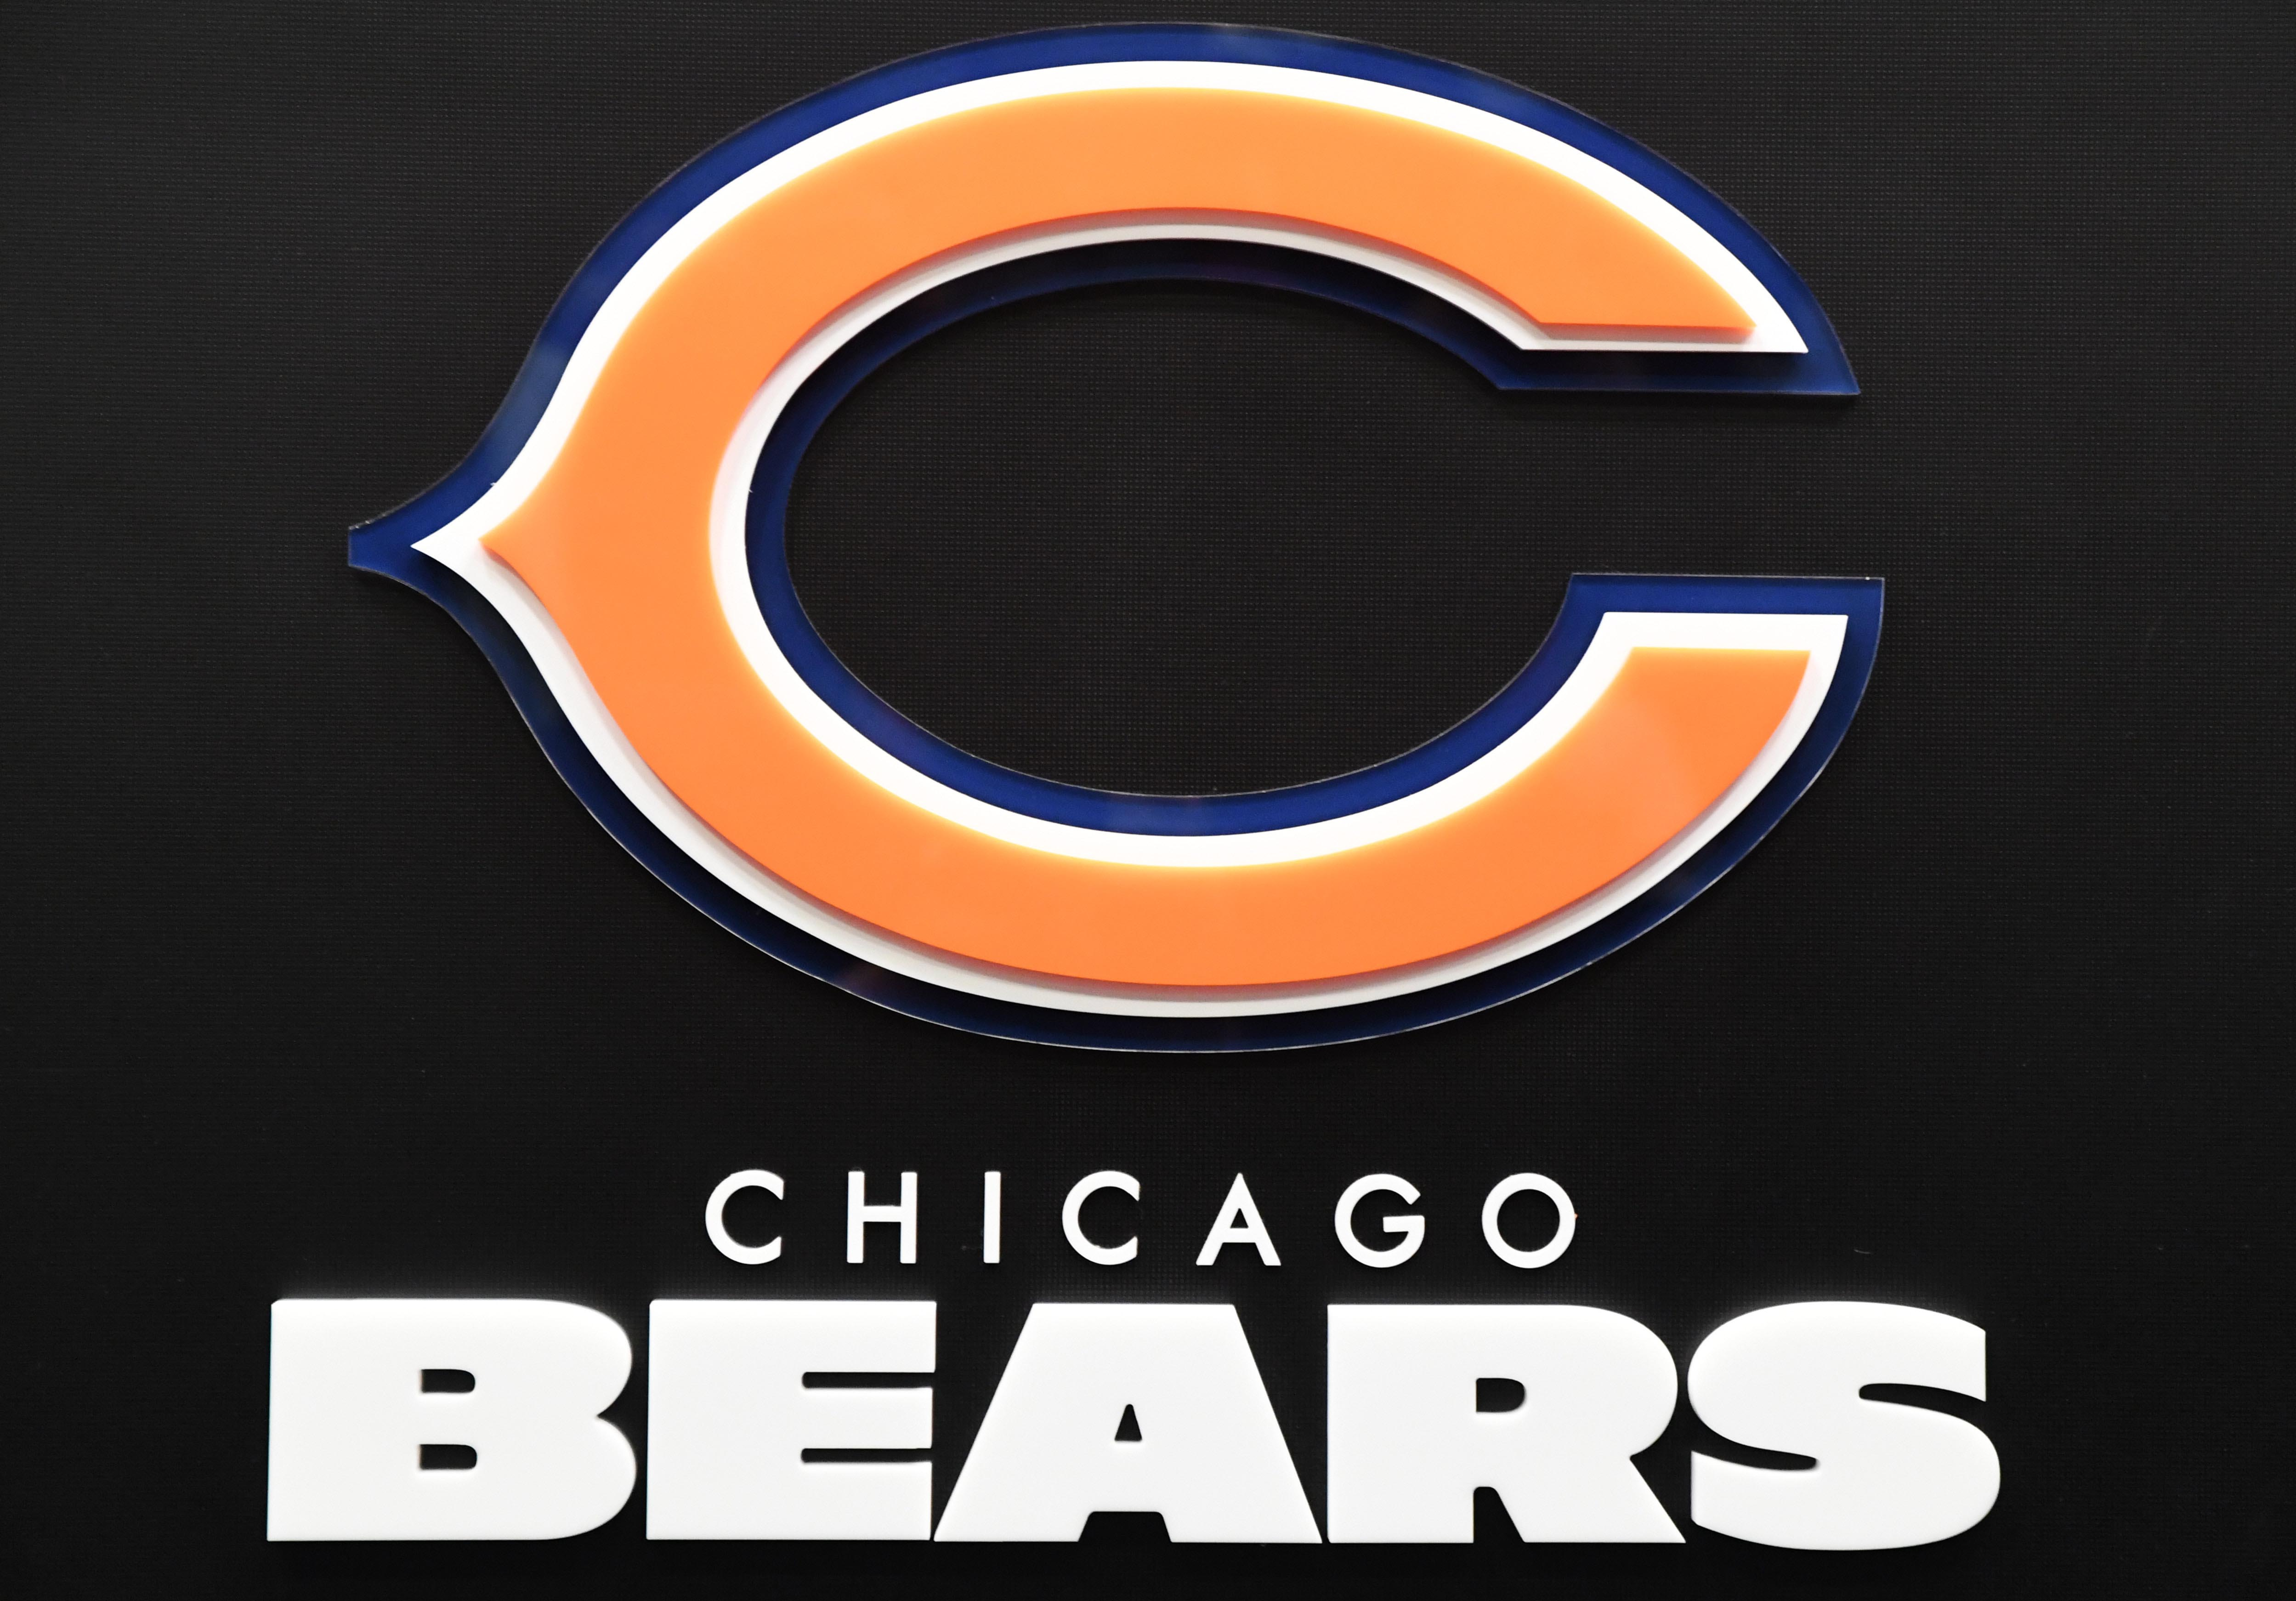 cheap nfl tickets chicago bears